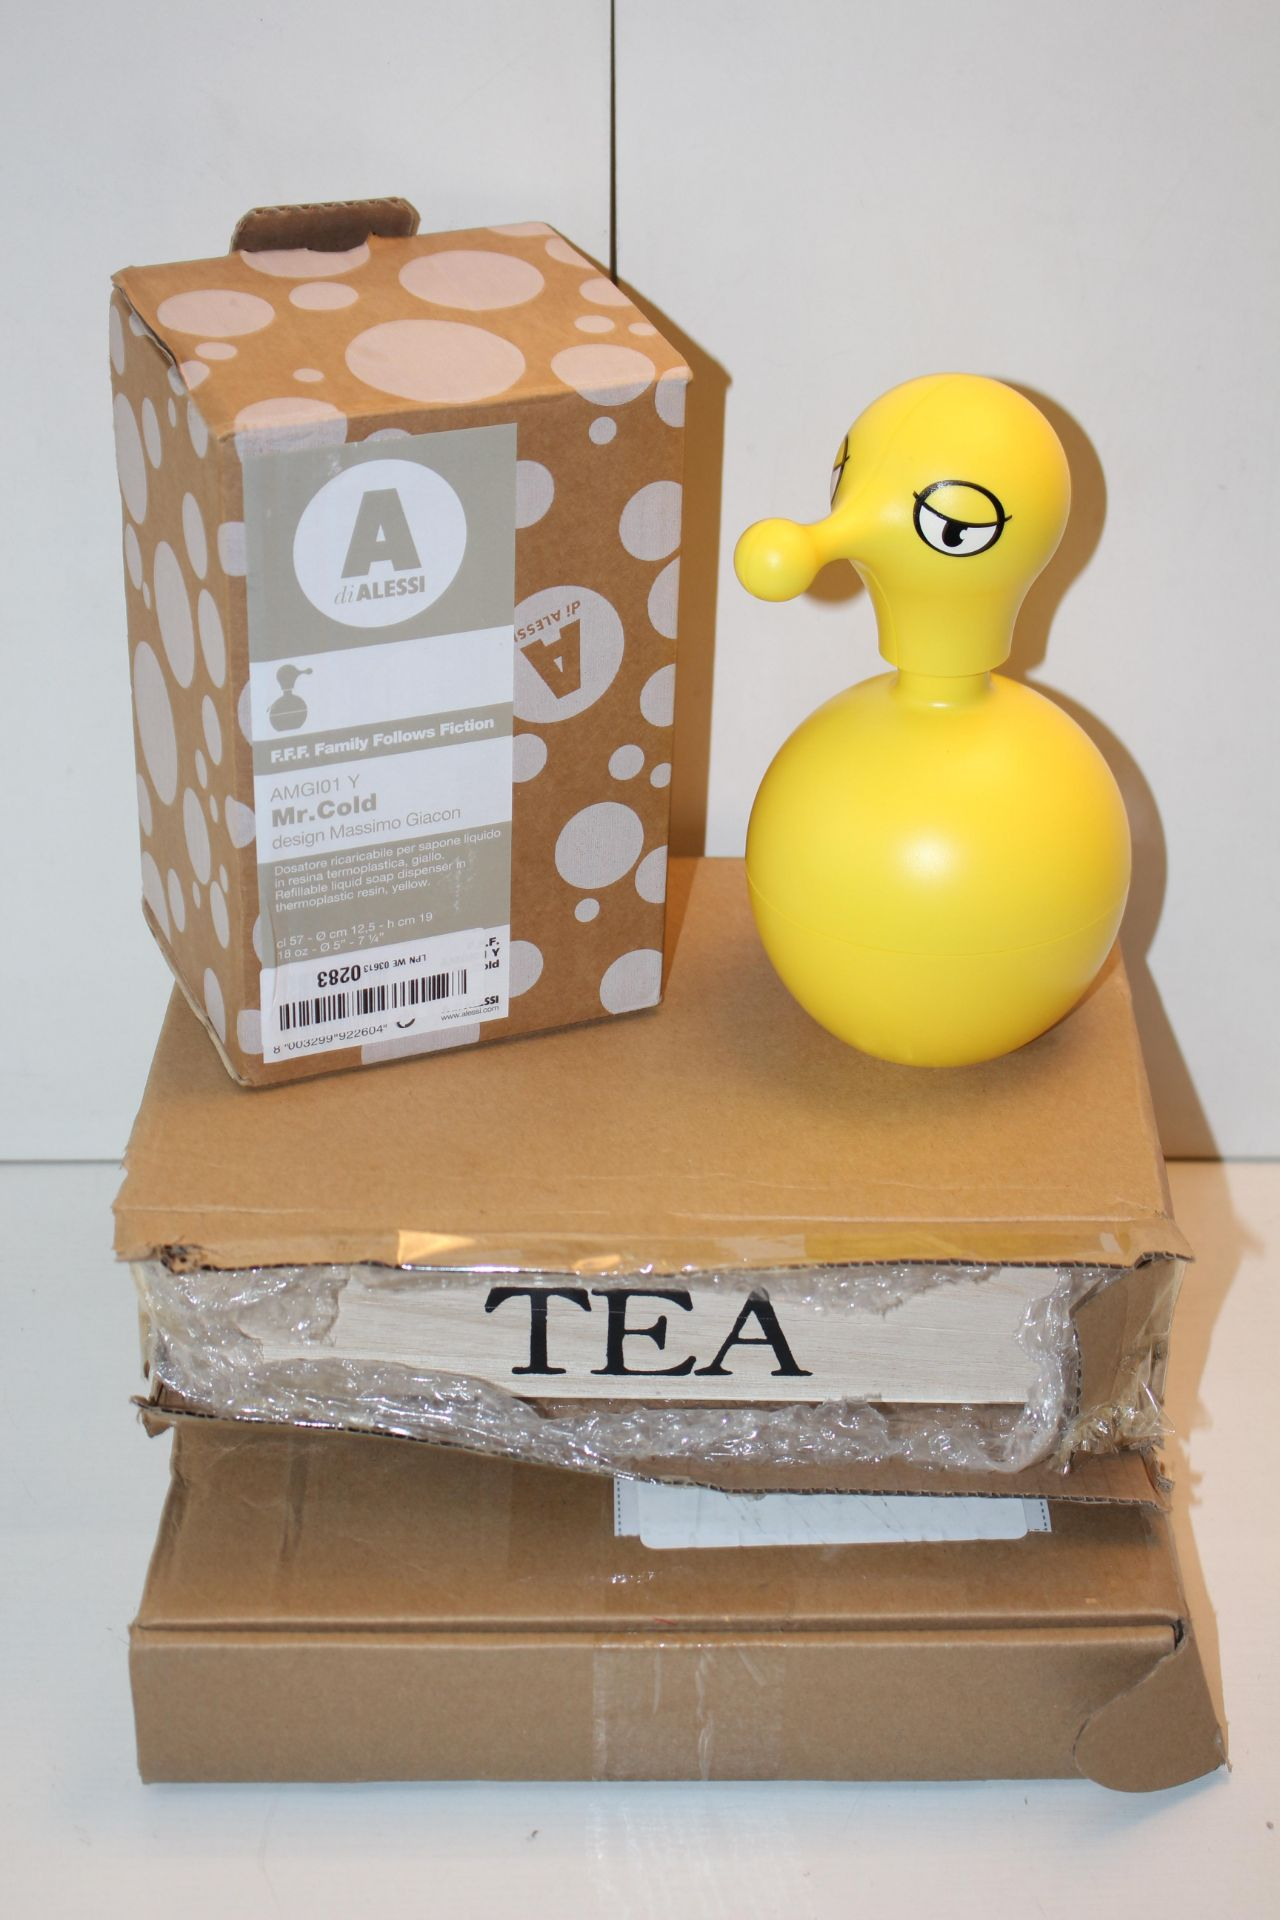 X3 HOME ITEMS INCLUDING, CLOCK,TEA HOLDER AND ALESSI SOAP DISPENSORCondition ReportAppraisal